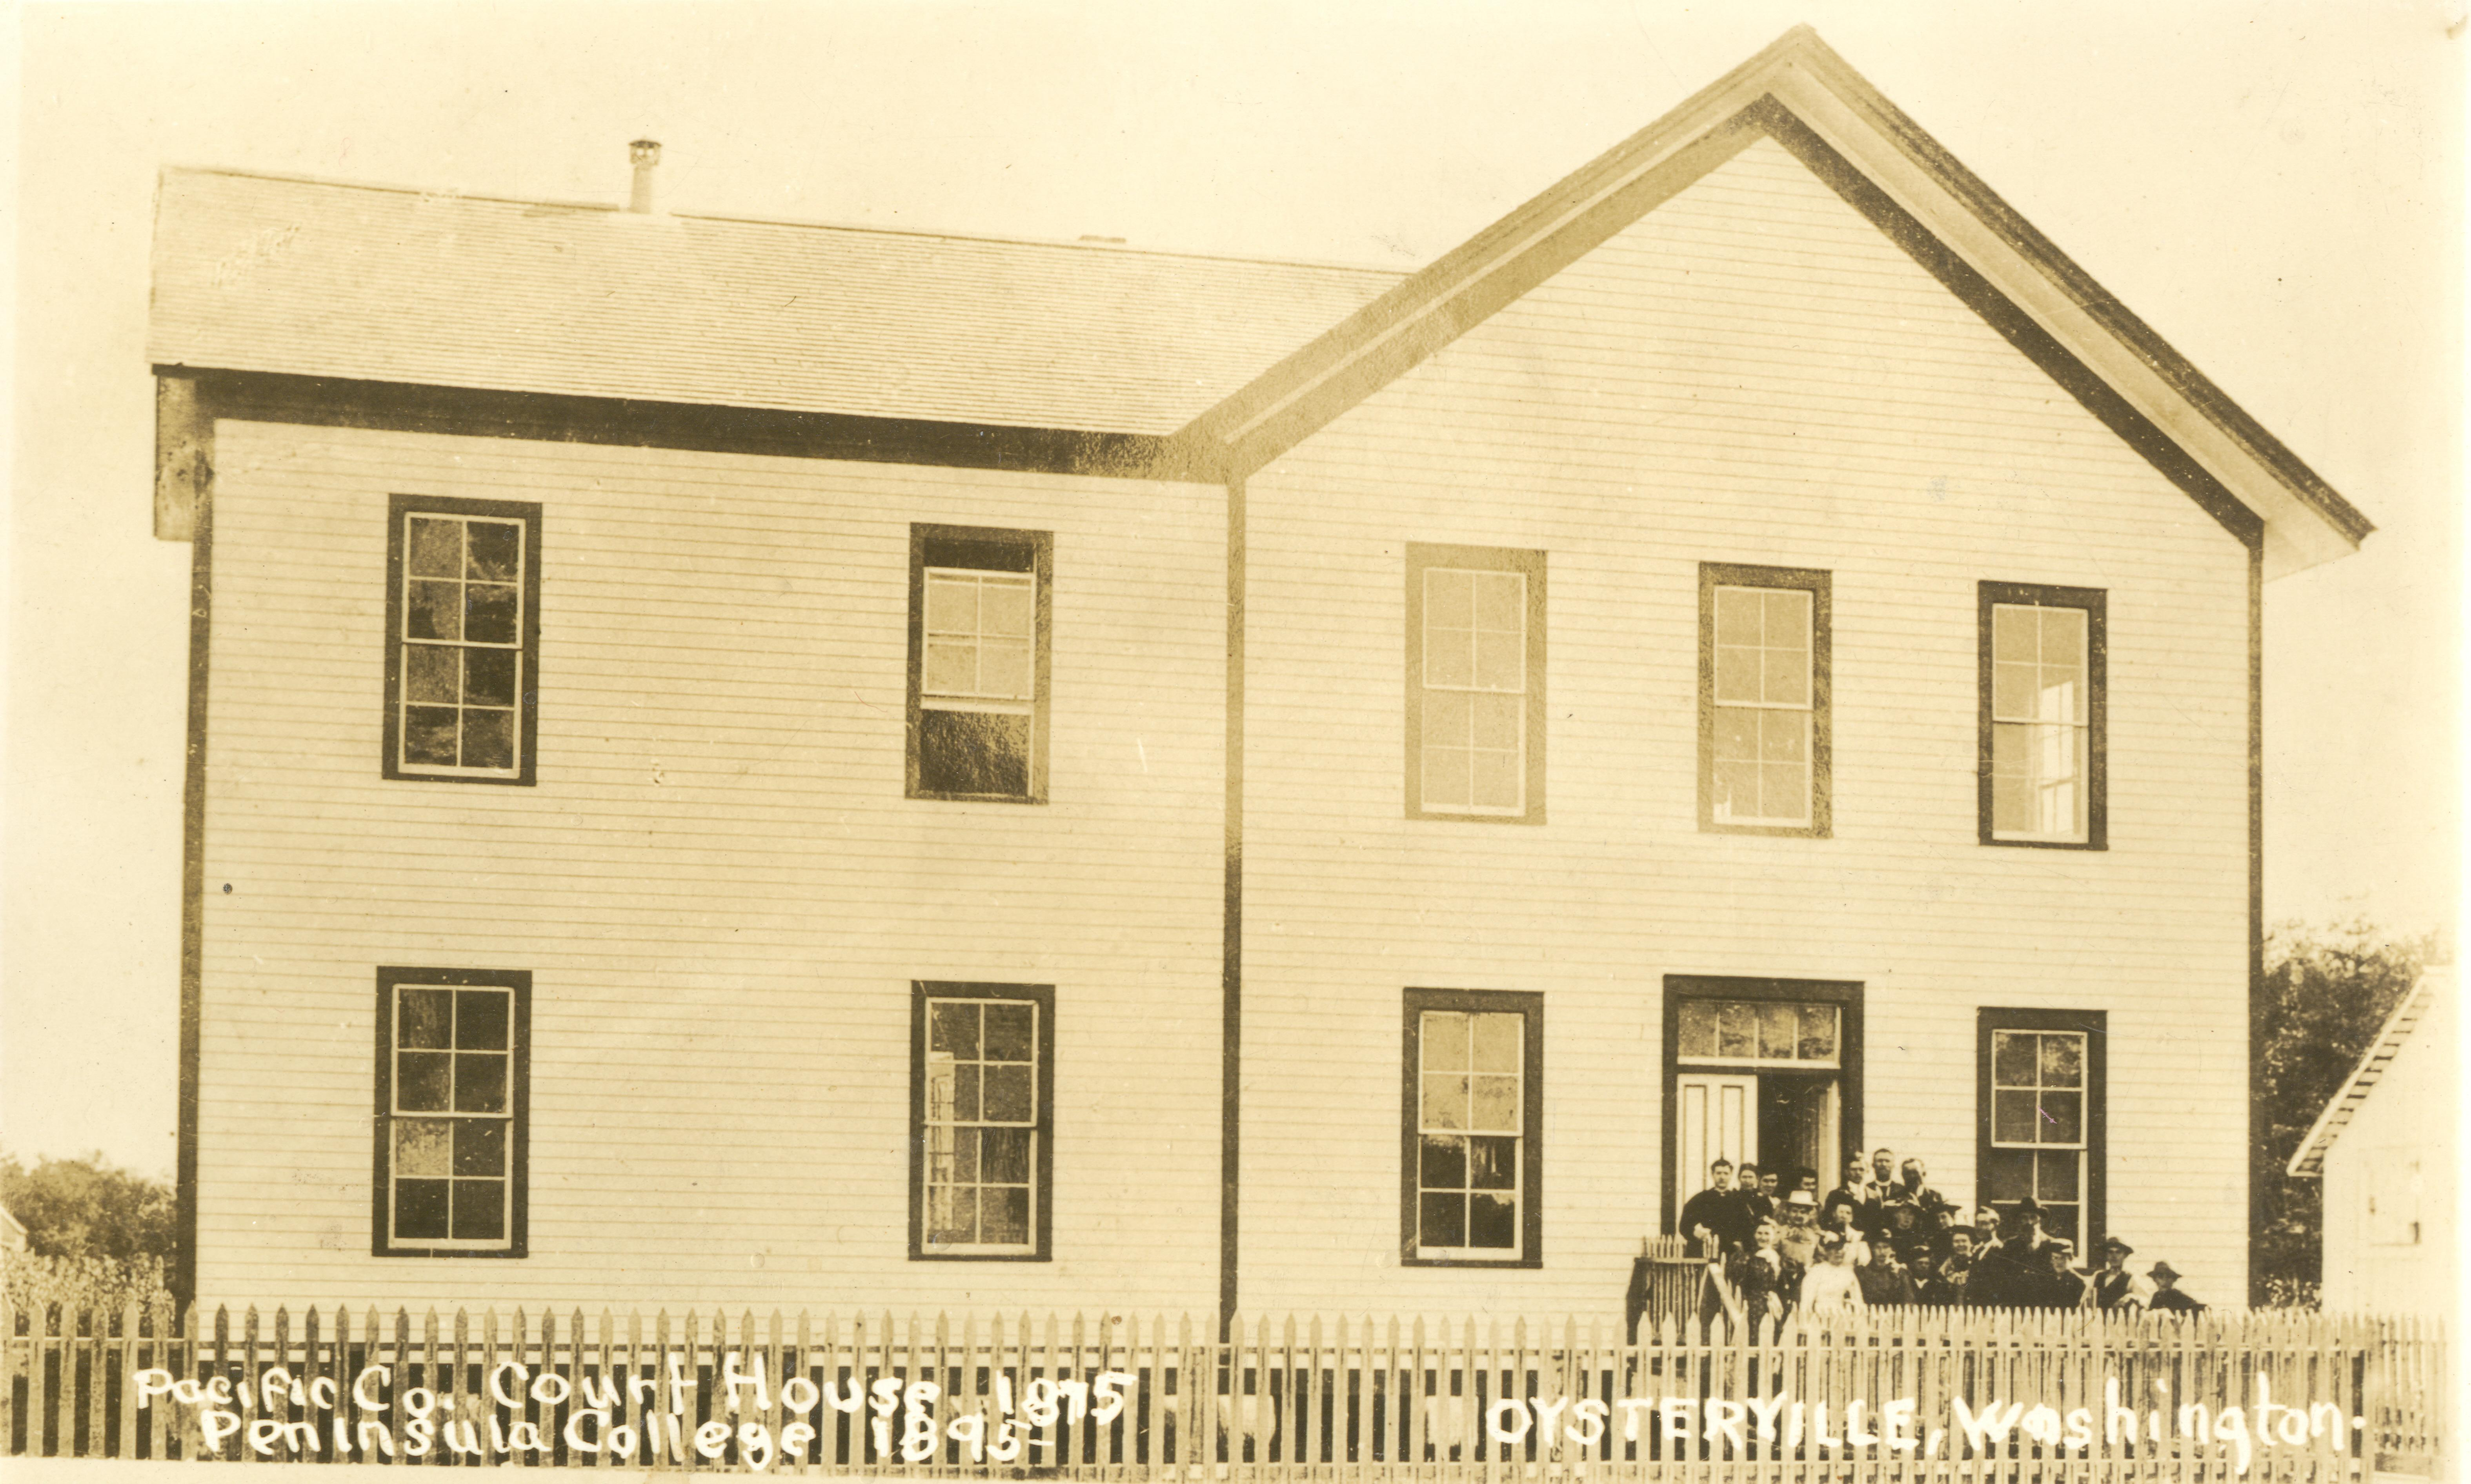 Oysterville Courthouse